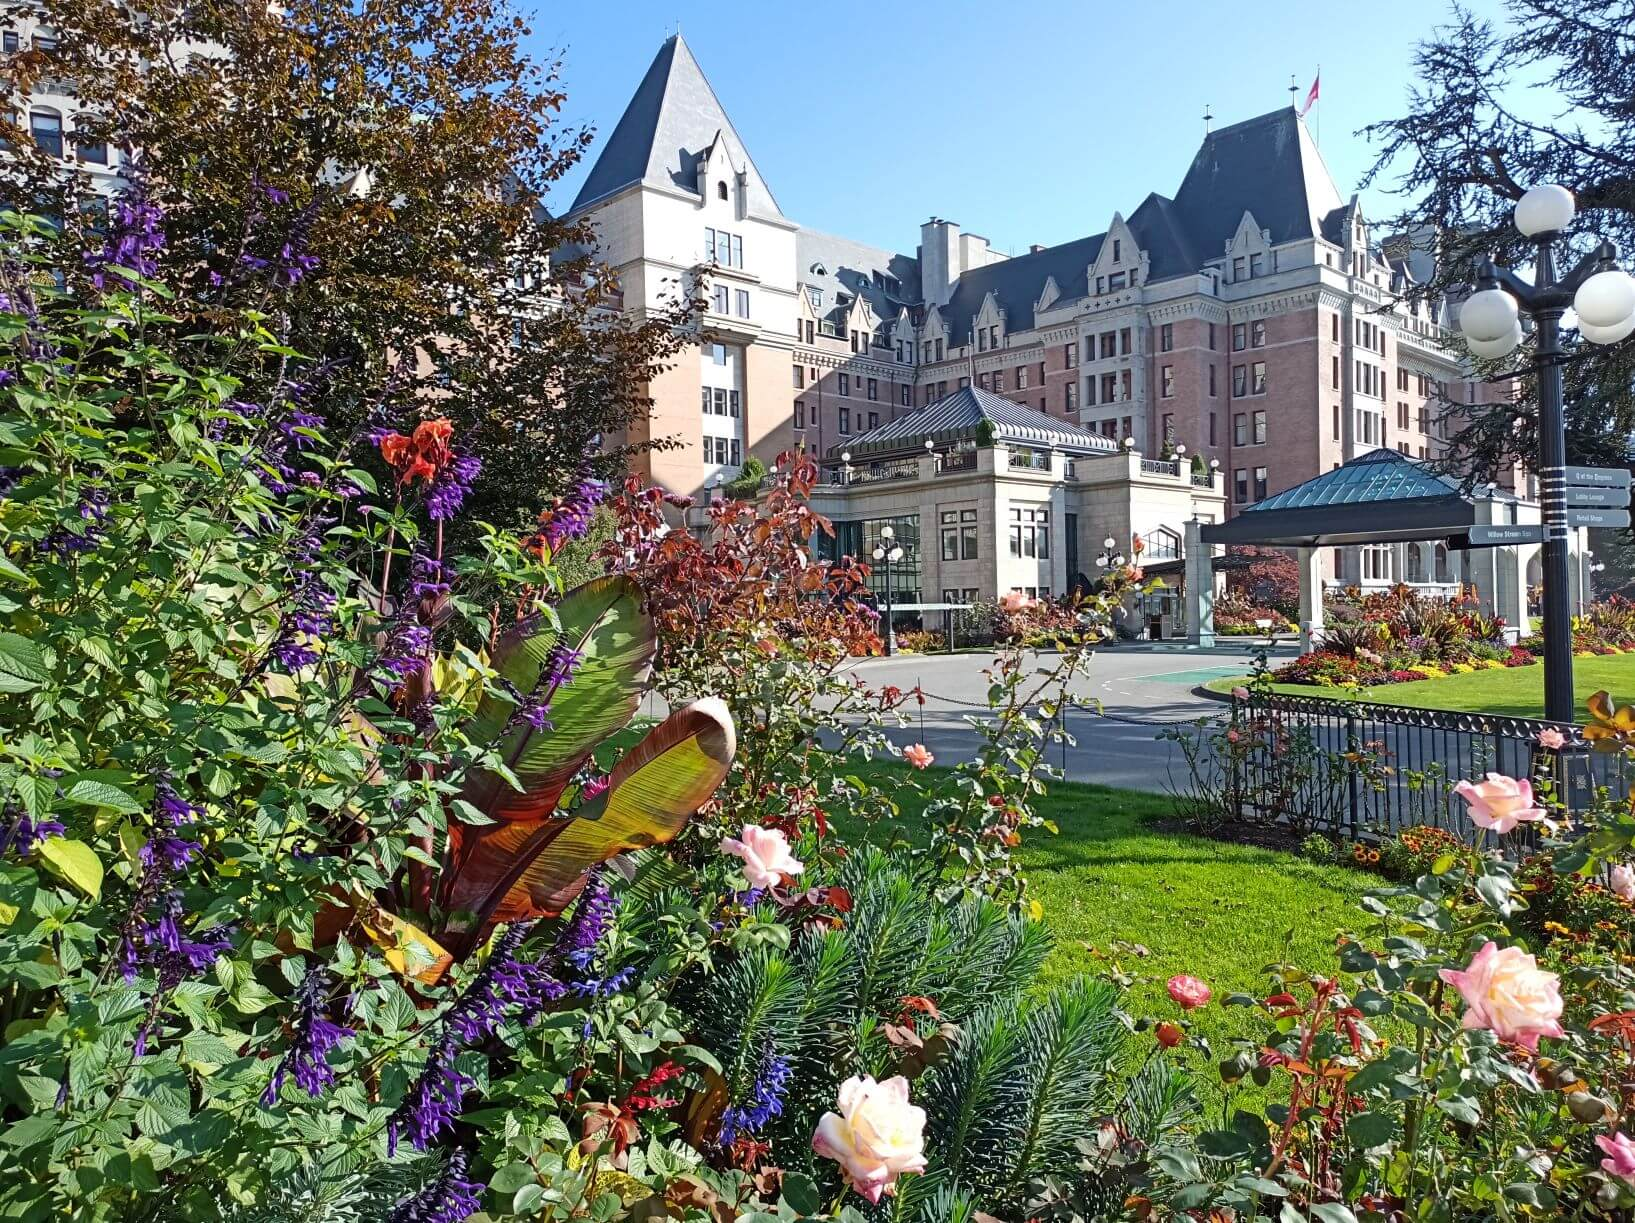 Empress Hotel with beautiful colourful flowers in front